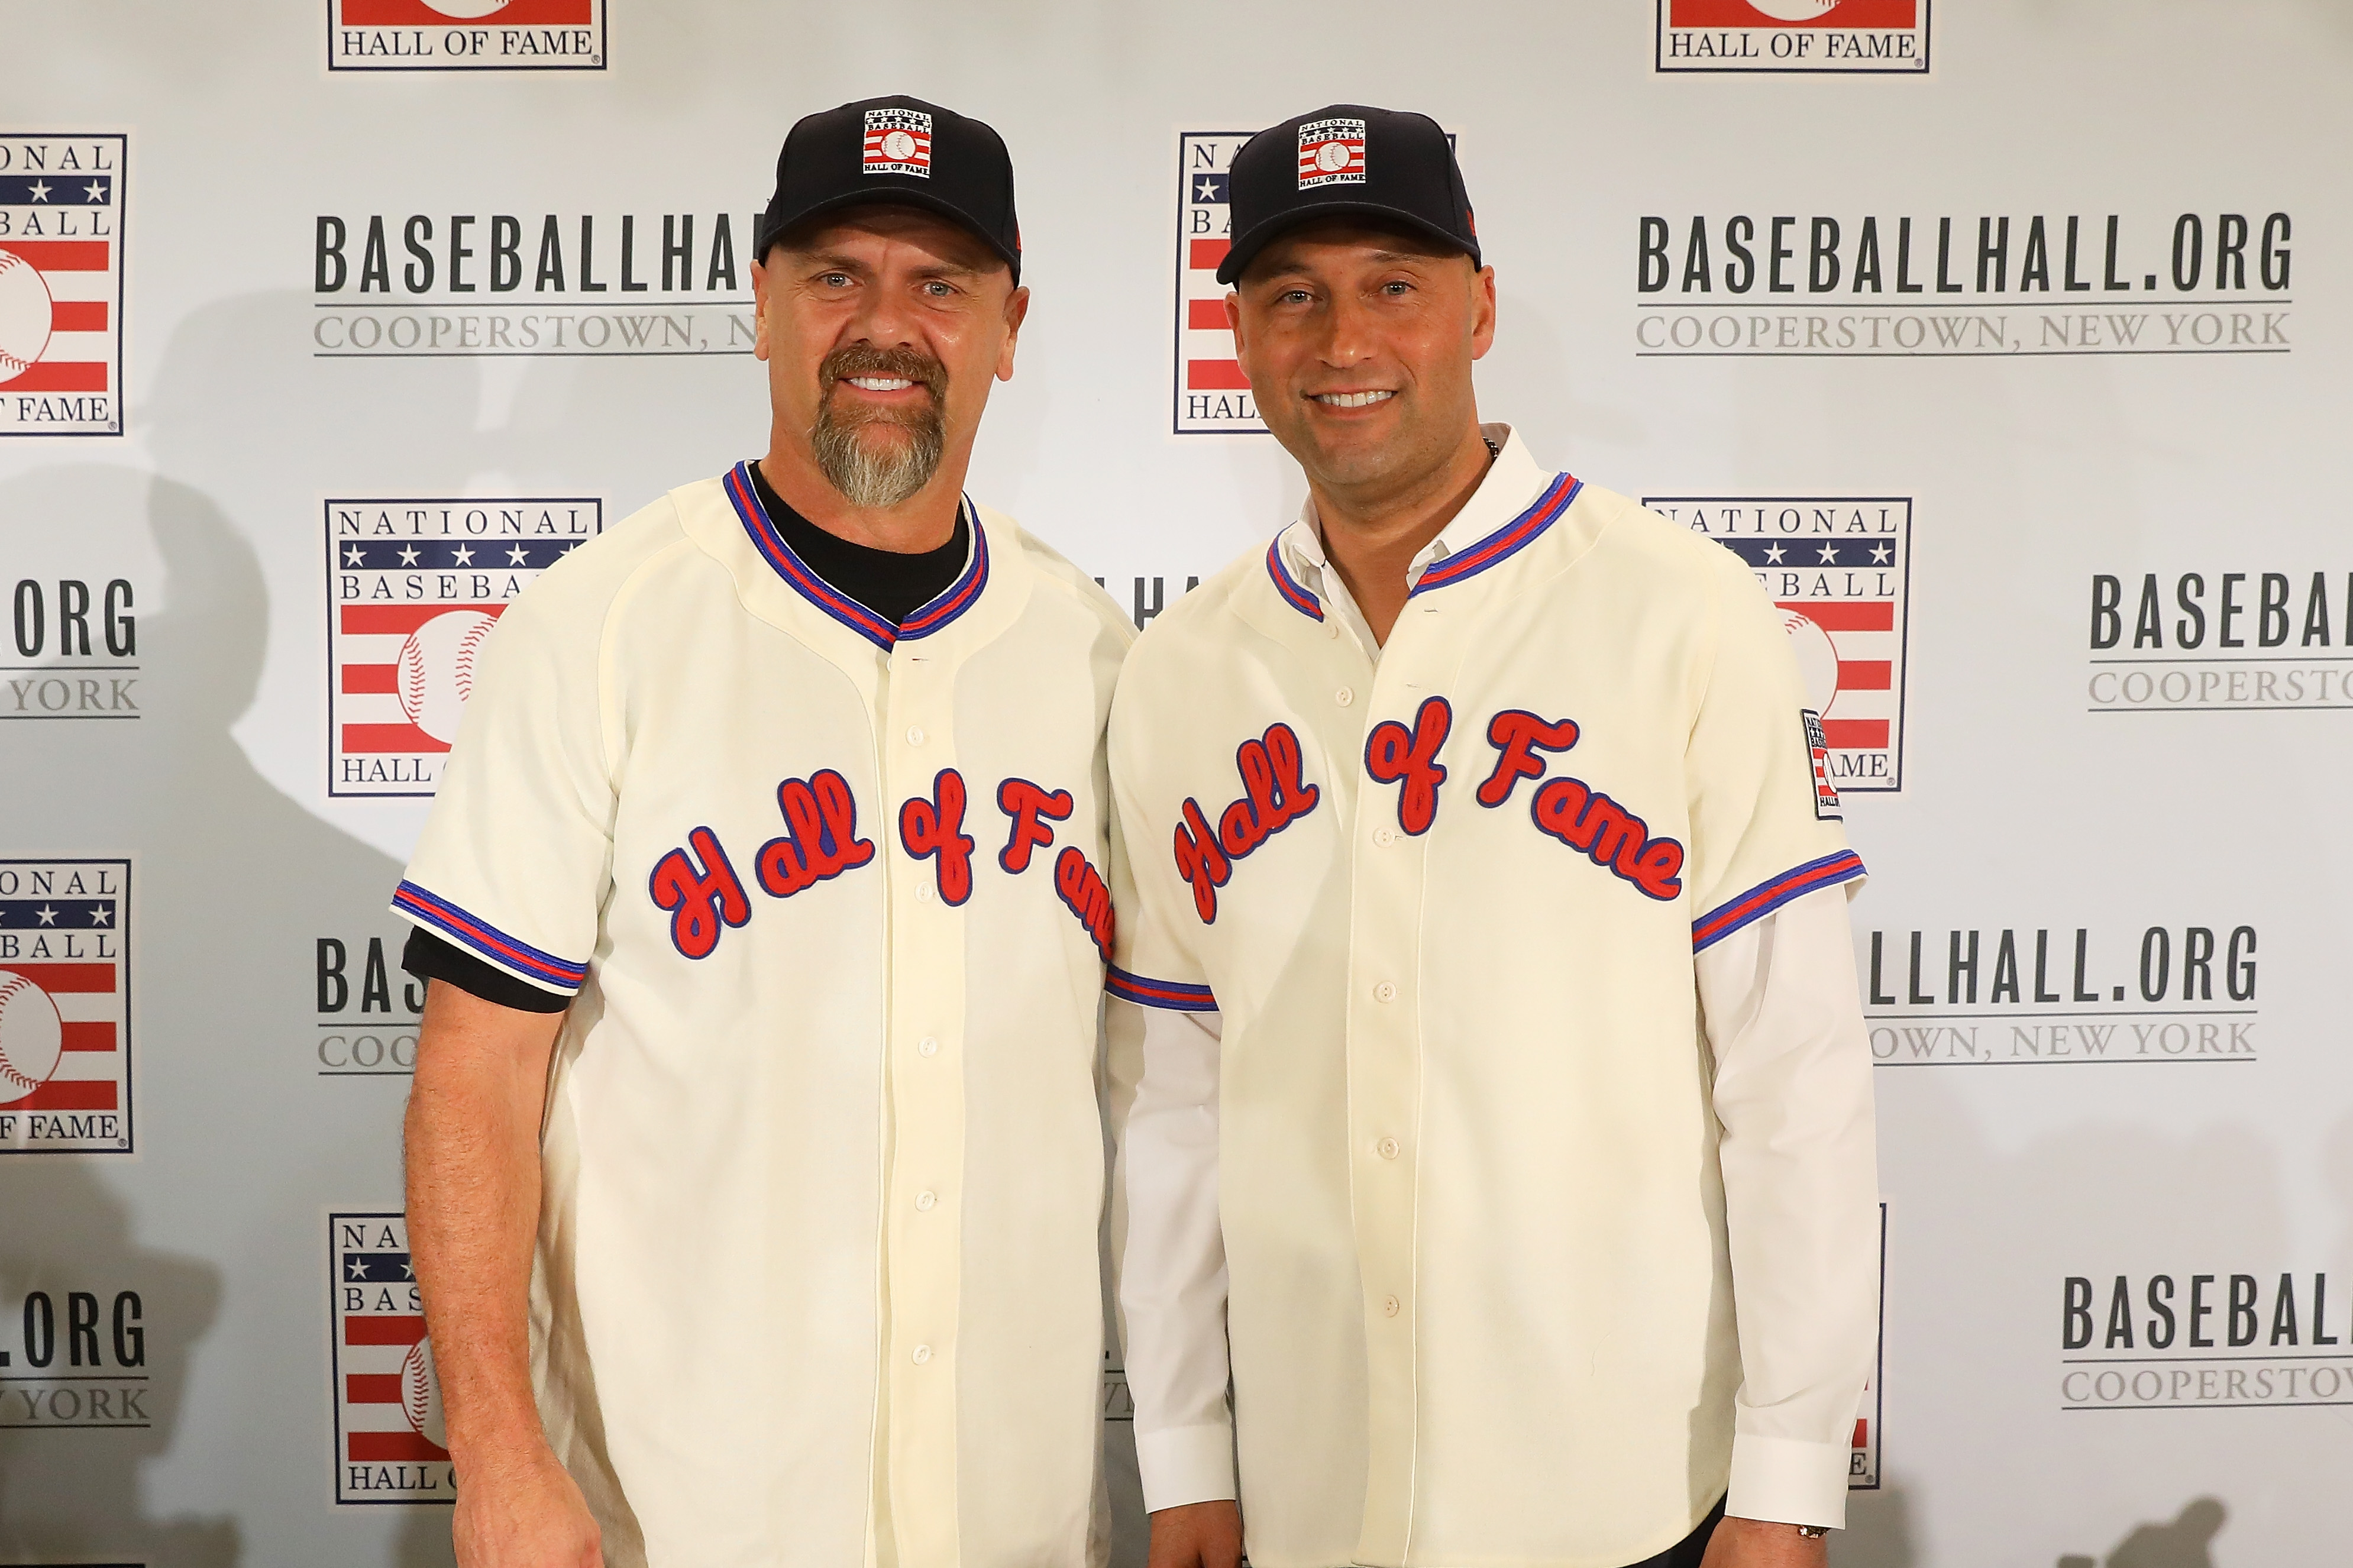 Larry Walker and Derek Jeer pose for a photo after being elected into the National Baseball Hall of Fame Class of 2020 on January 22, 2020 at the St. Regis Hotel in New York City.